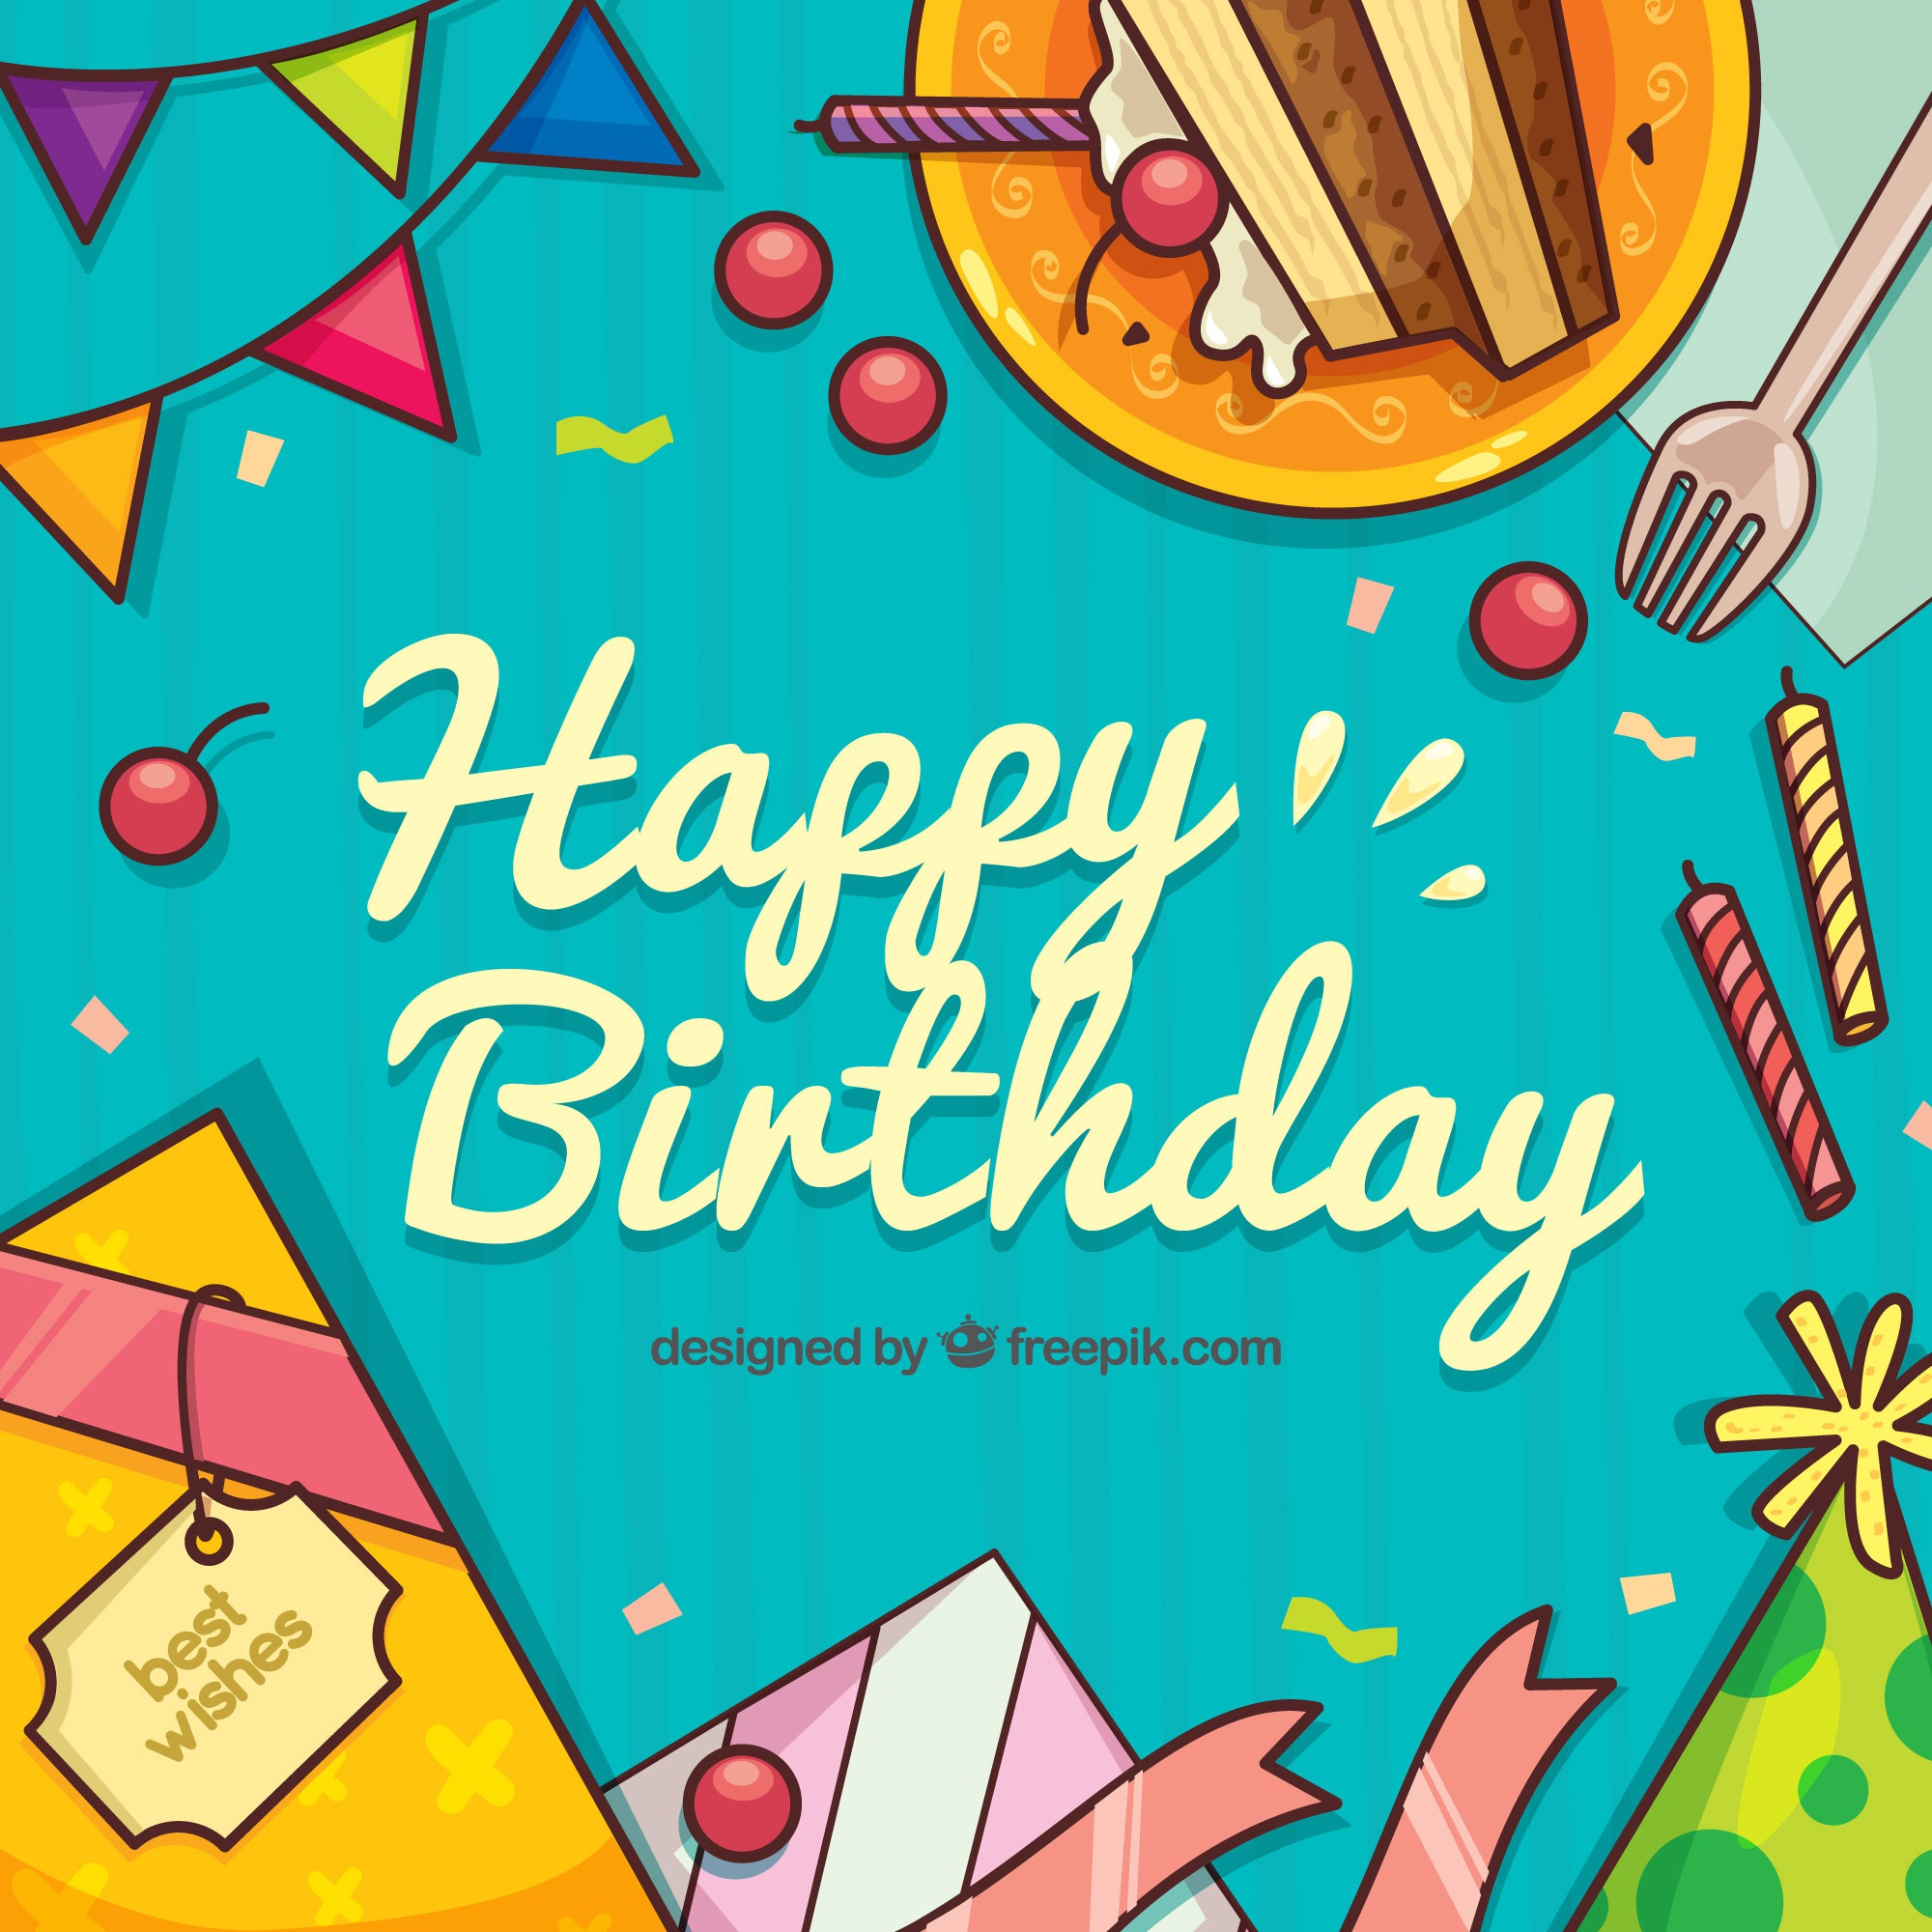 Happy birthday background with hand drawn elements